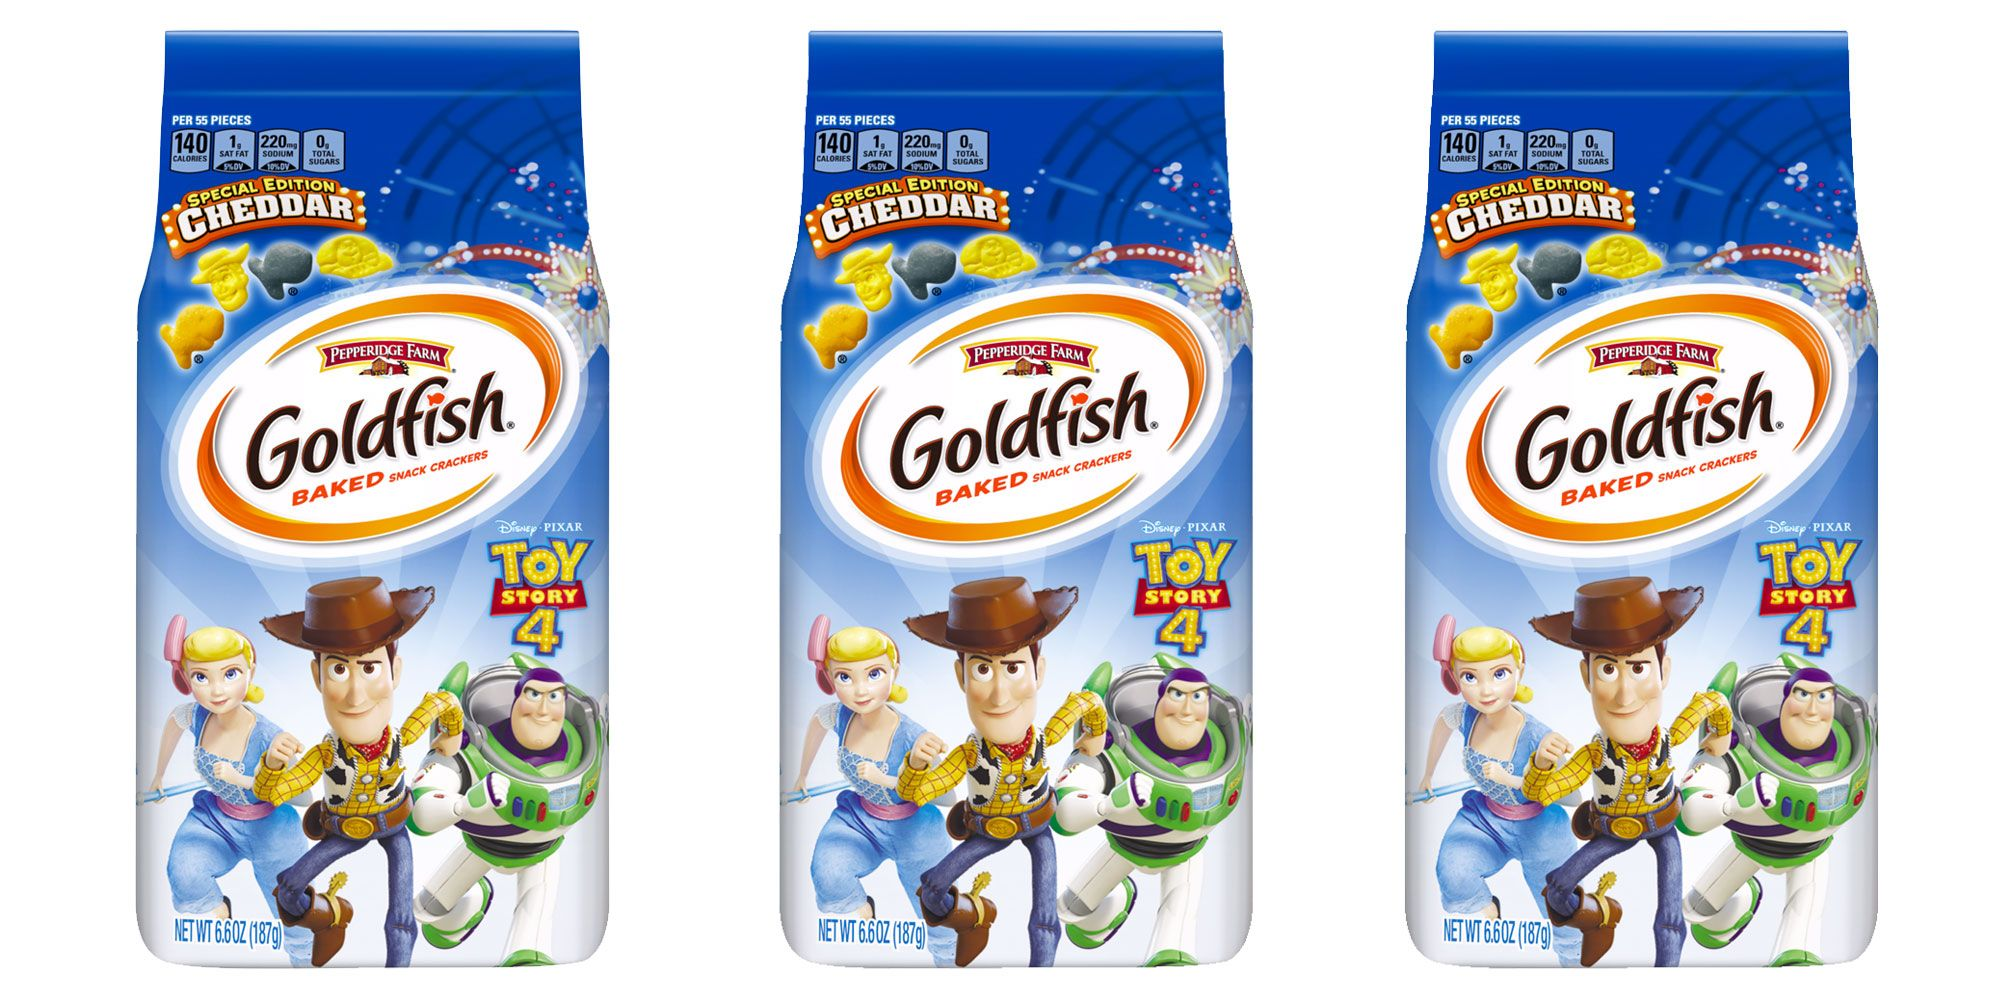 Toy Story Goldfish Are Launching In May And They're Woody, Buzz Lightyear, And Little Bo Peep-Themed